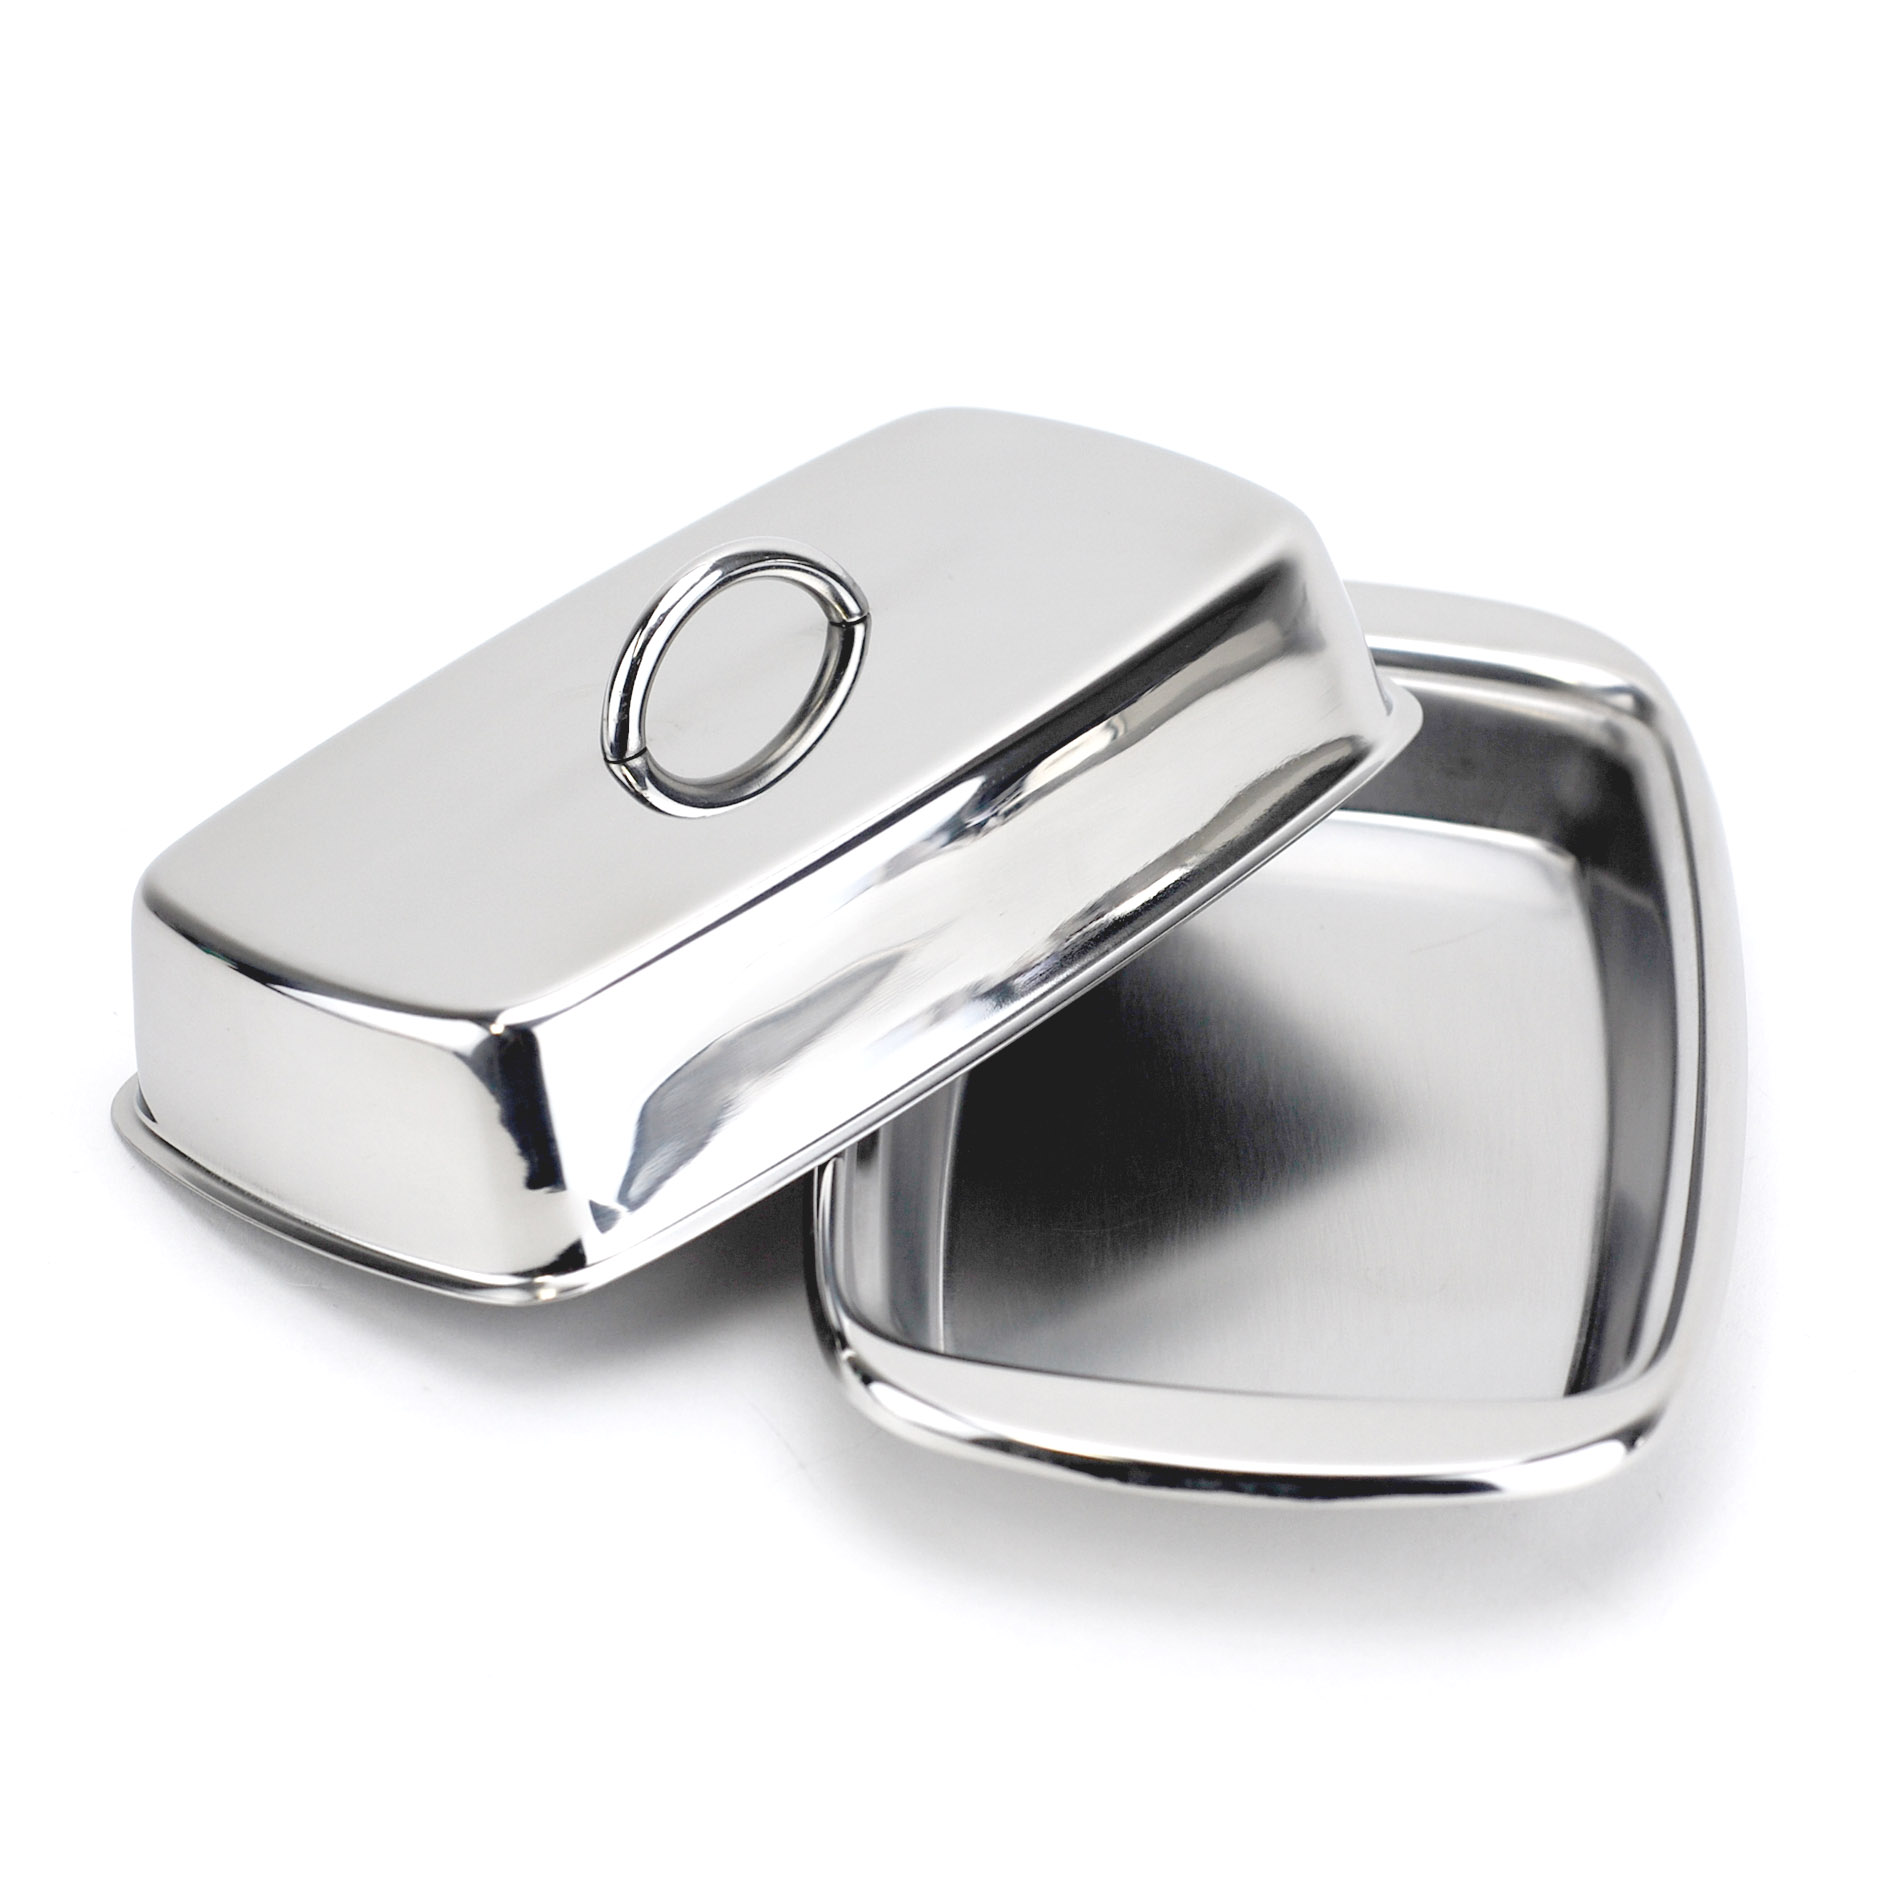 Covered Butter Dish, Cute Country Stainless Steel French Butter Dish, Silver